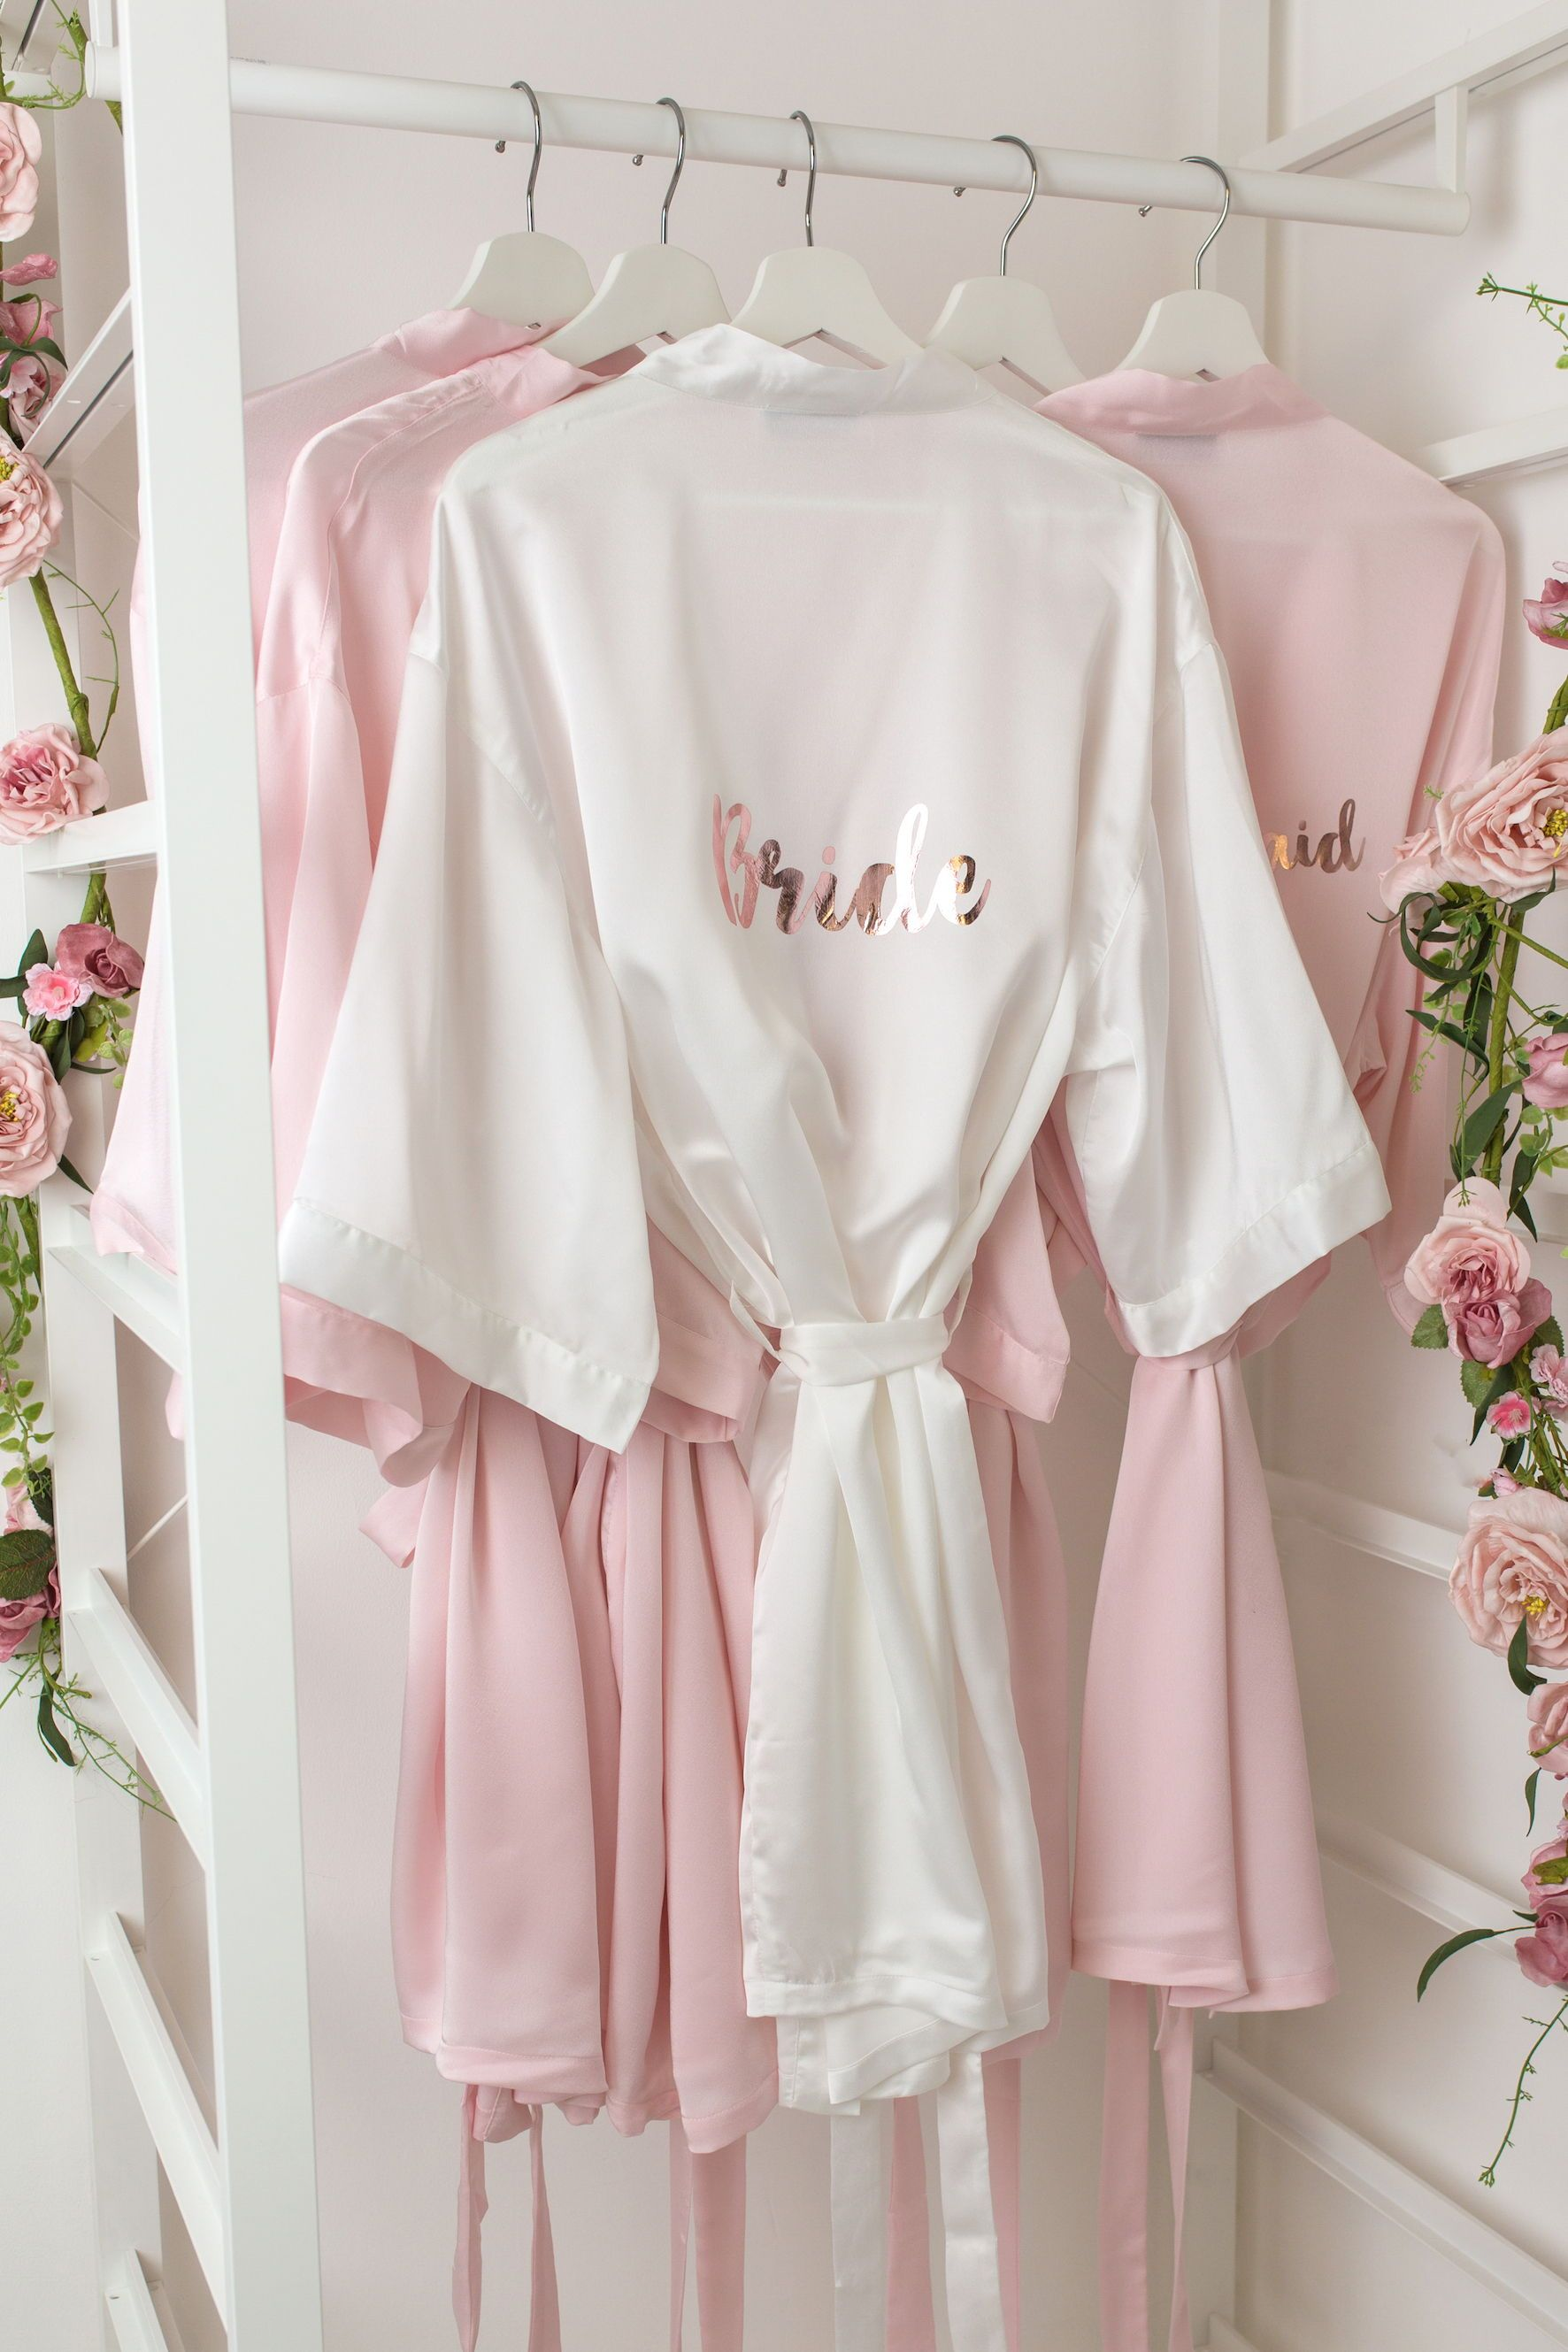 Wedding dressing gowns  Dressing gown Bridesmaid gifts wedding robe wedding dressing gown